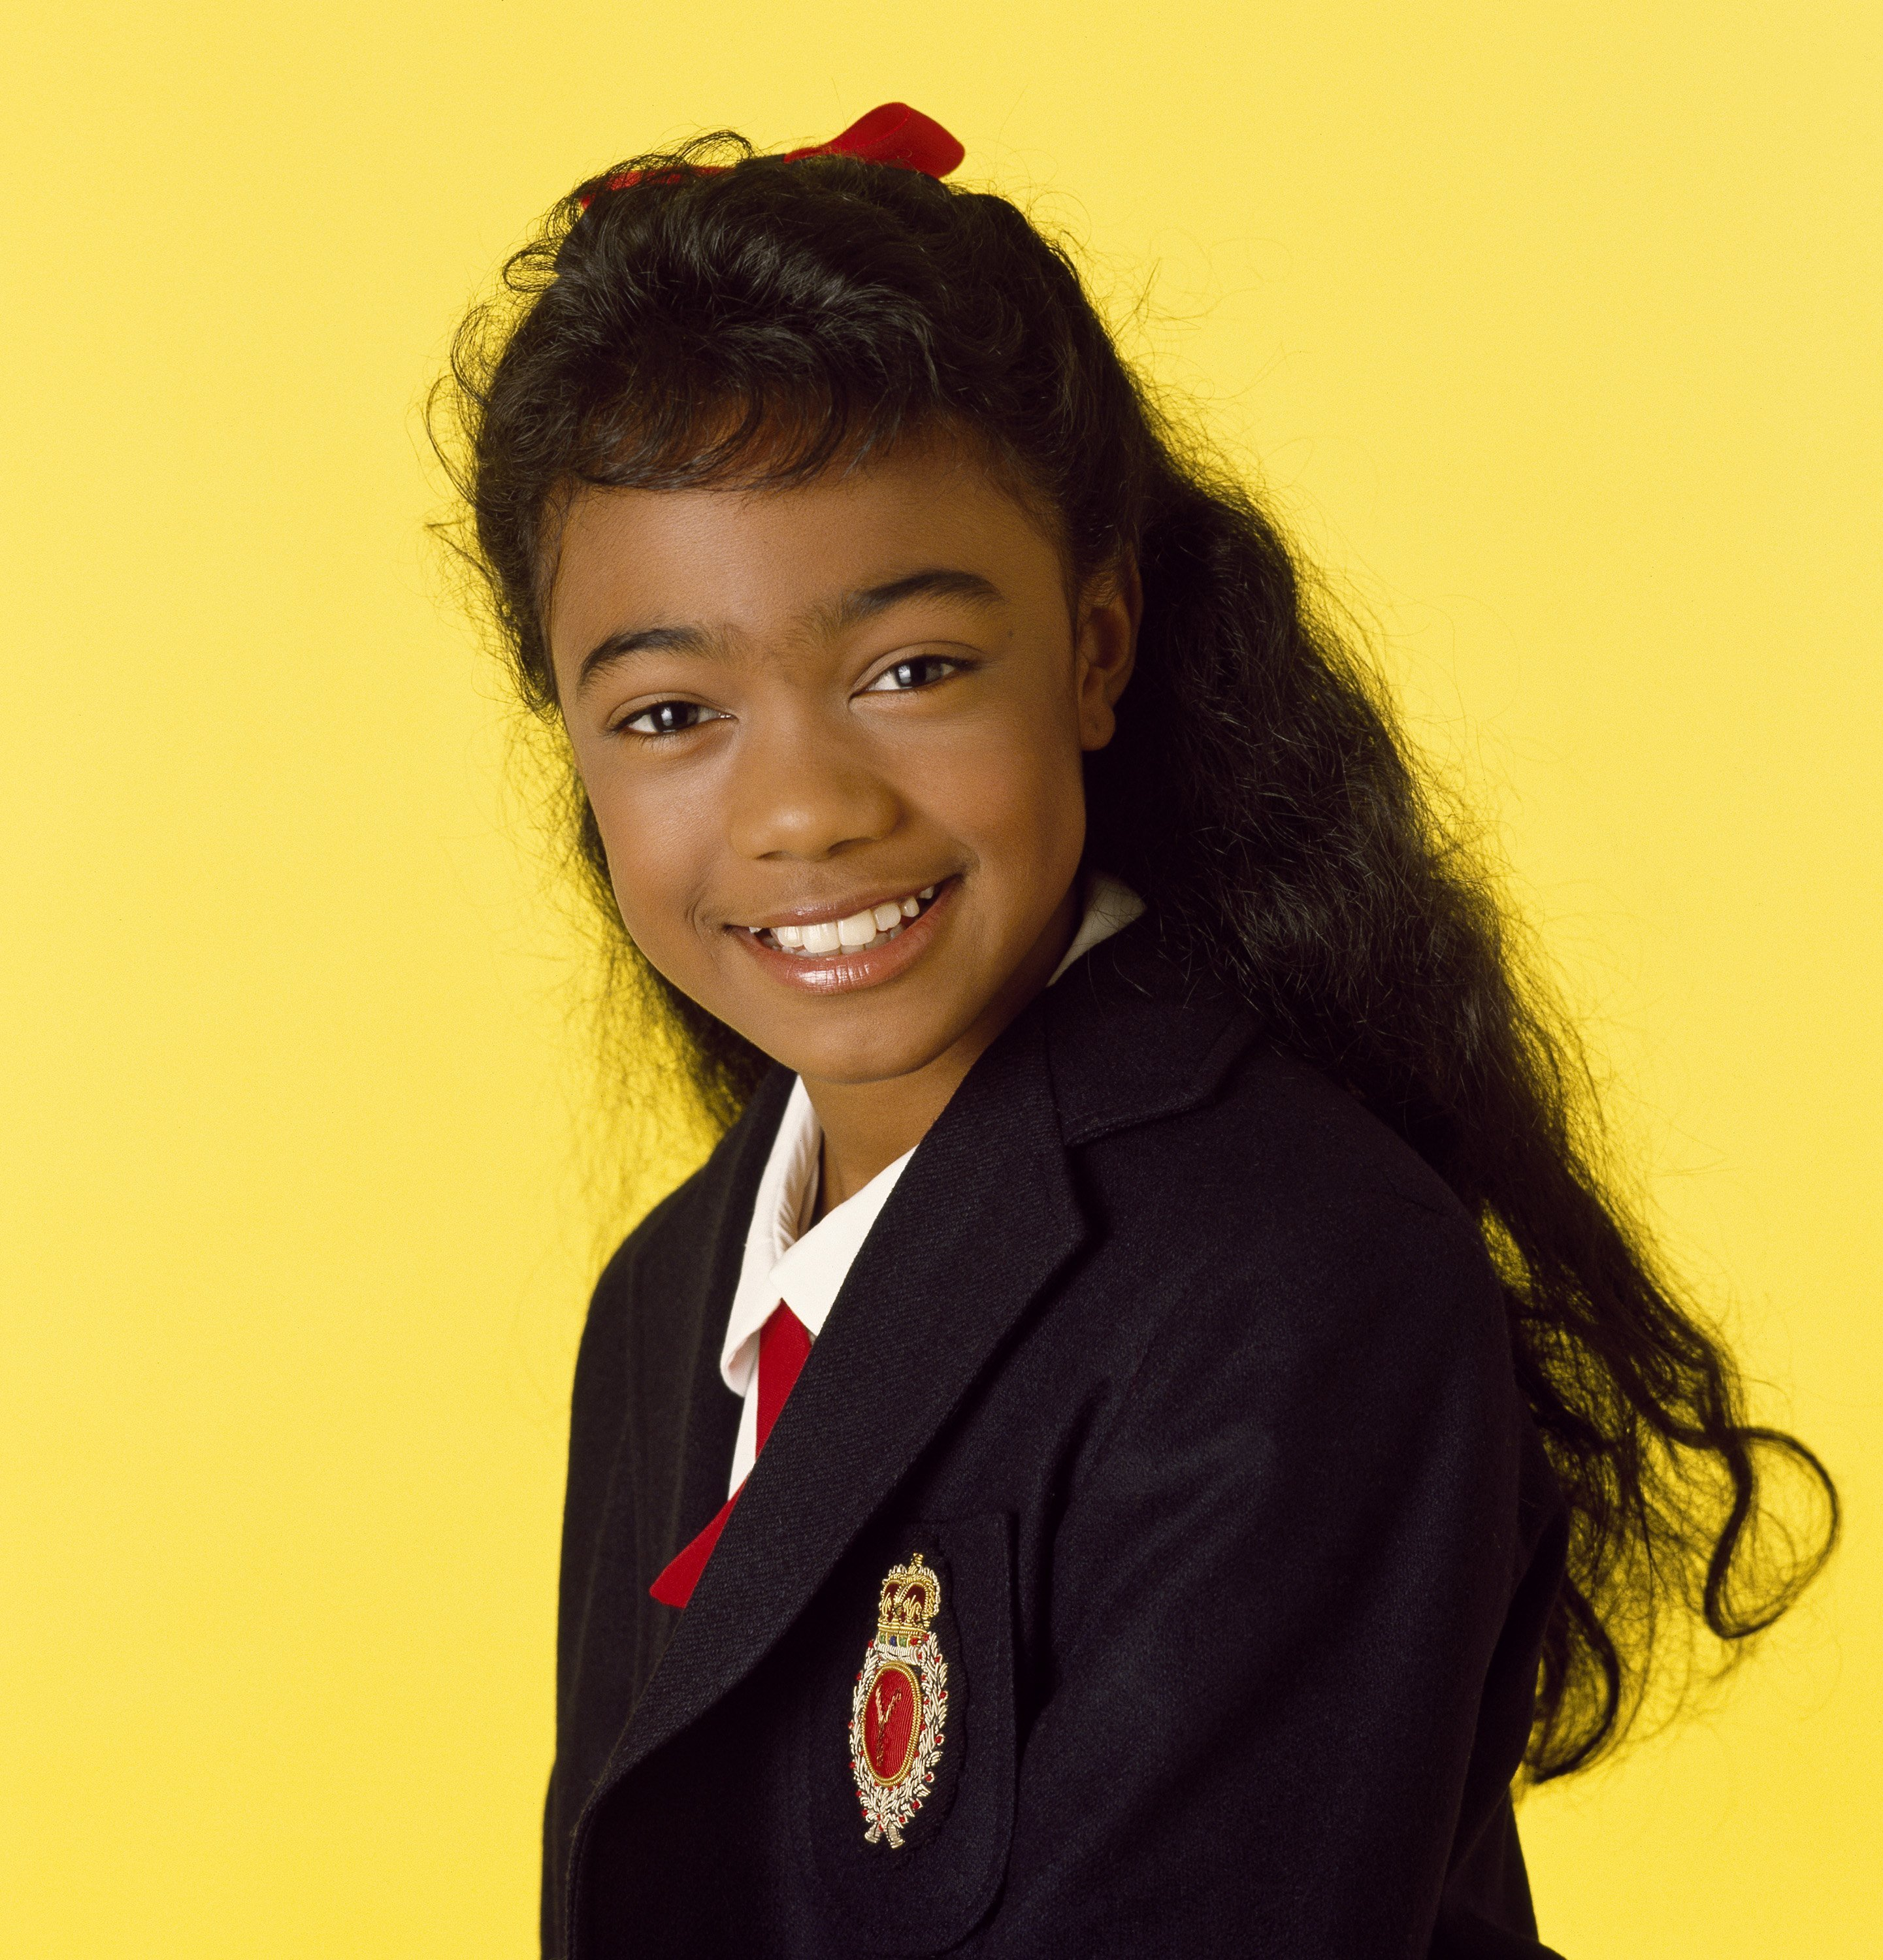 """Tatyana Ali as Ashley Banks in Season 1 of """"The Fresh Prince of Bel-air""""   Source: Getty Images"""